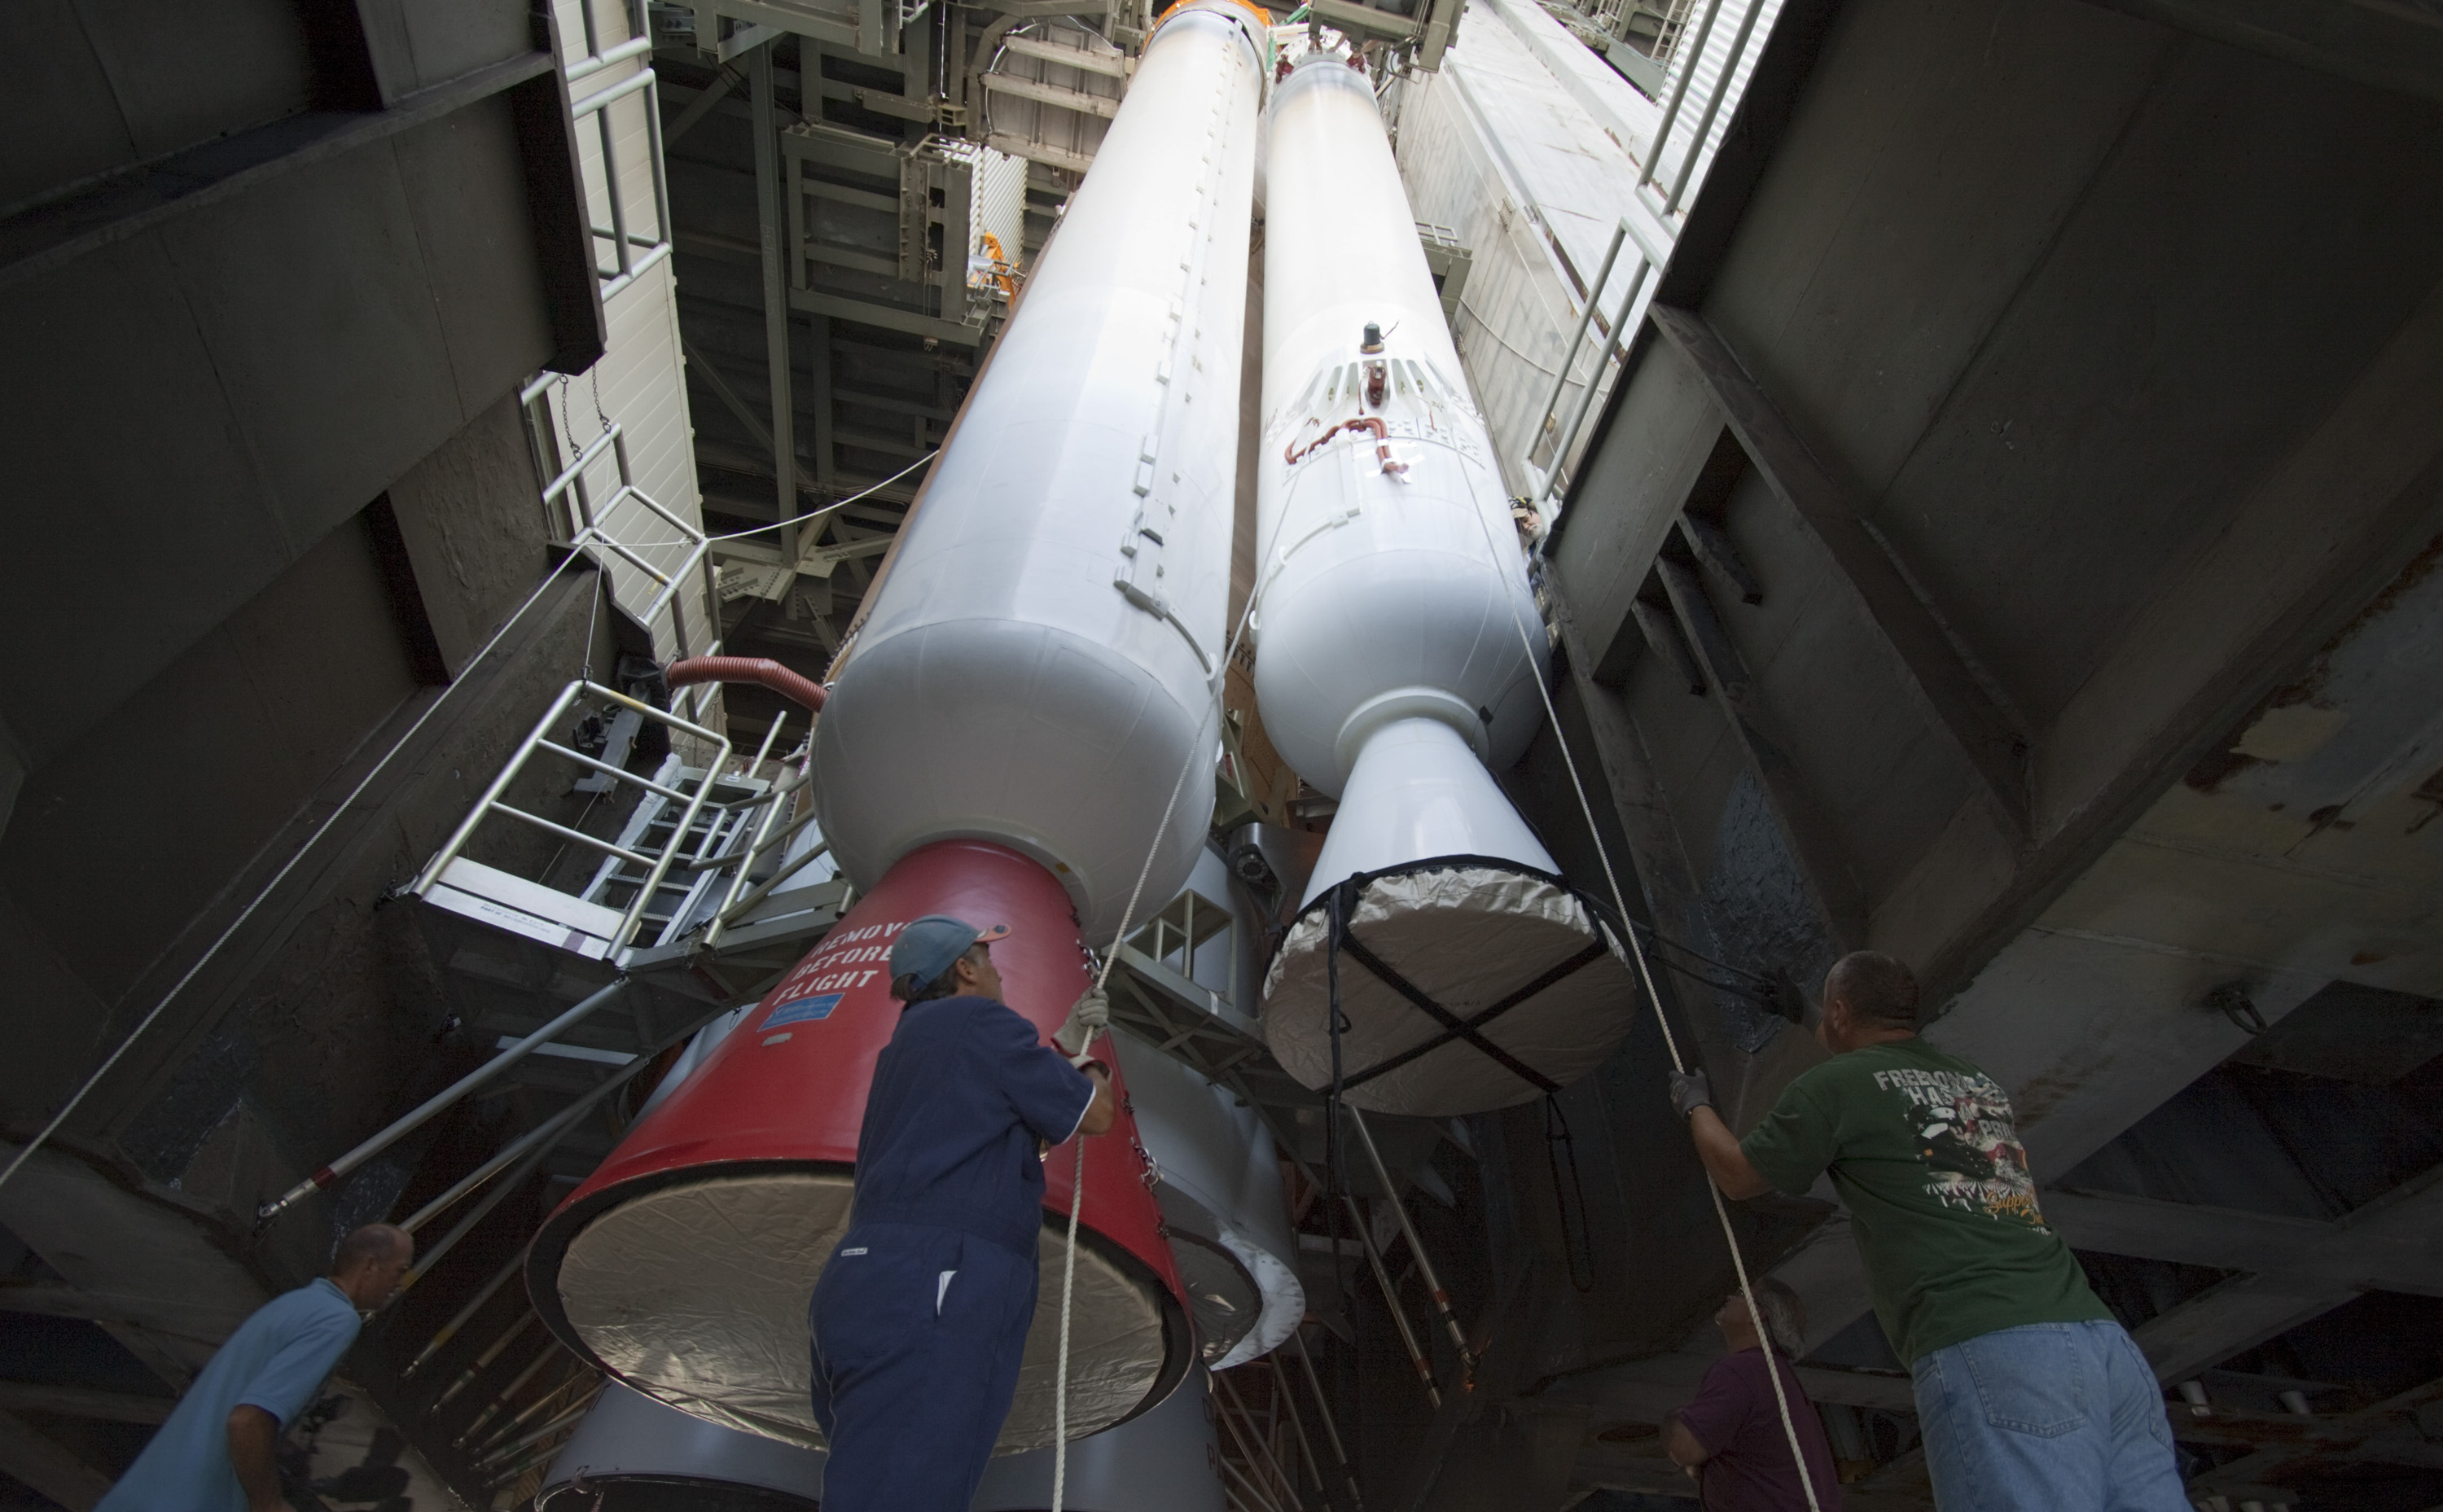 Inside the Vertical Integration Facility at Space Launch Complex 41 on Cape Canaveral Air Force Station in Florida, technicians using an overhead crane guide the final solid rocket motor into position for mating to the first stage of a United Launch Alliance Atlas V rocket.